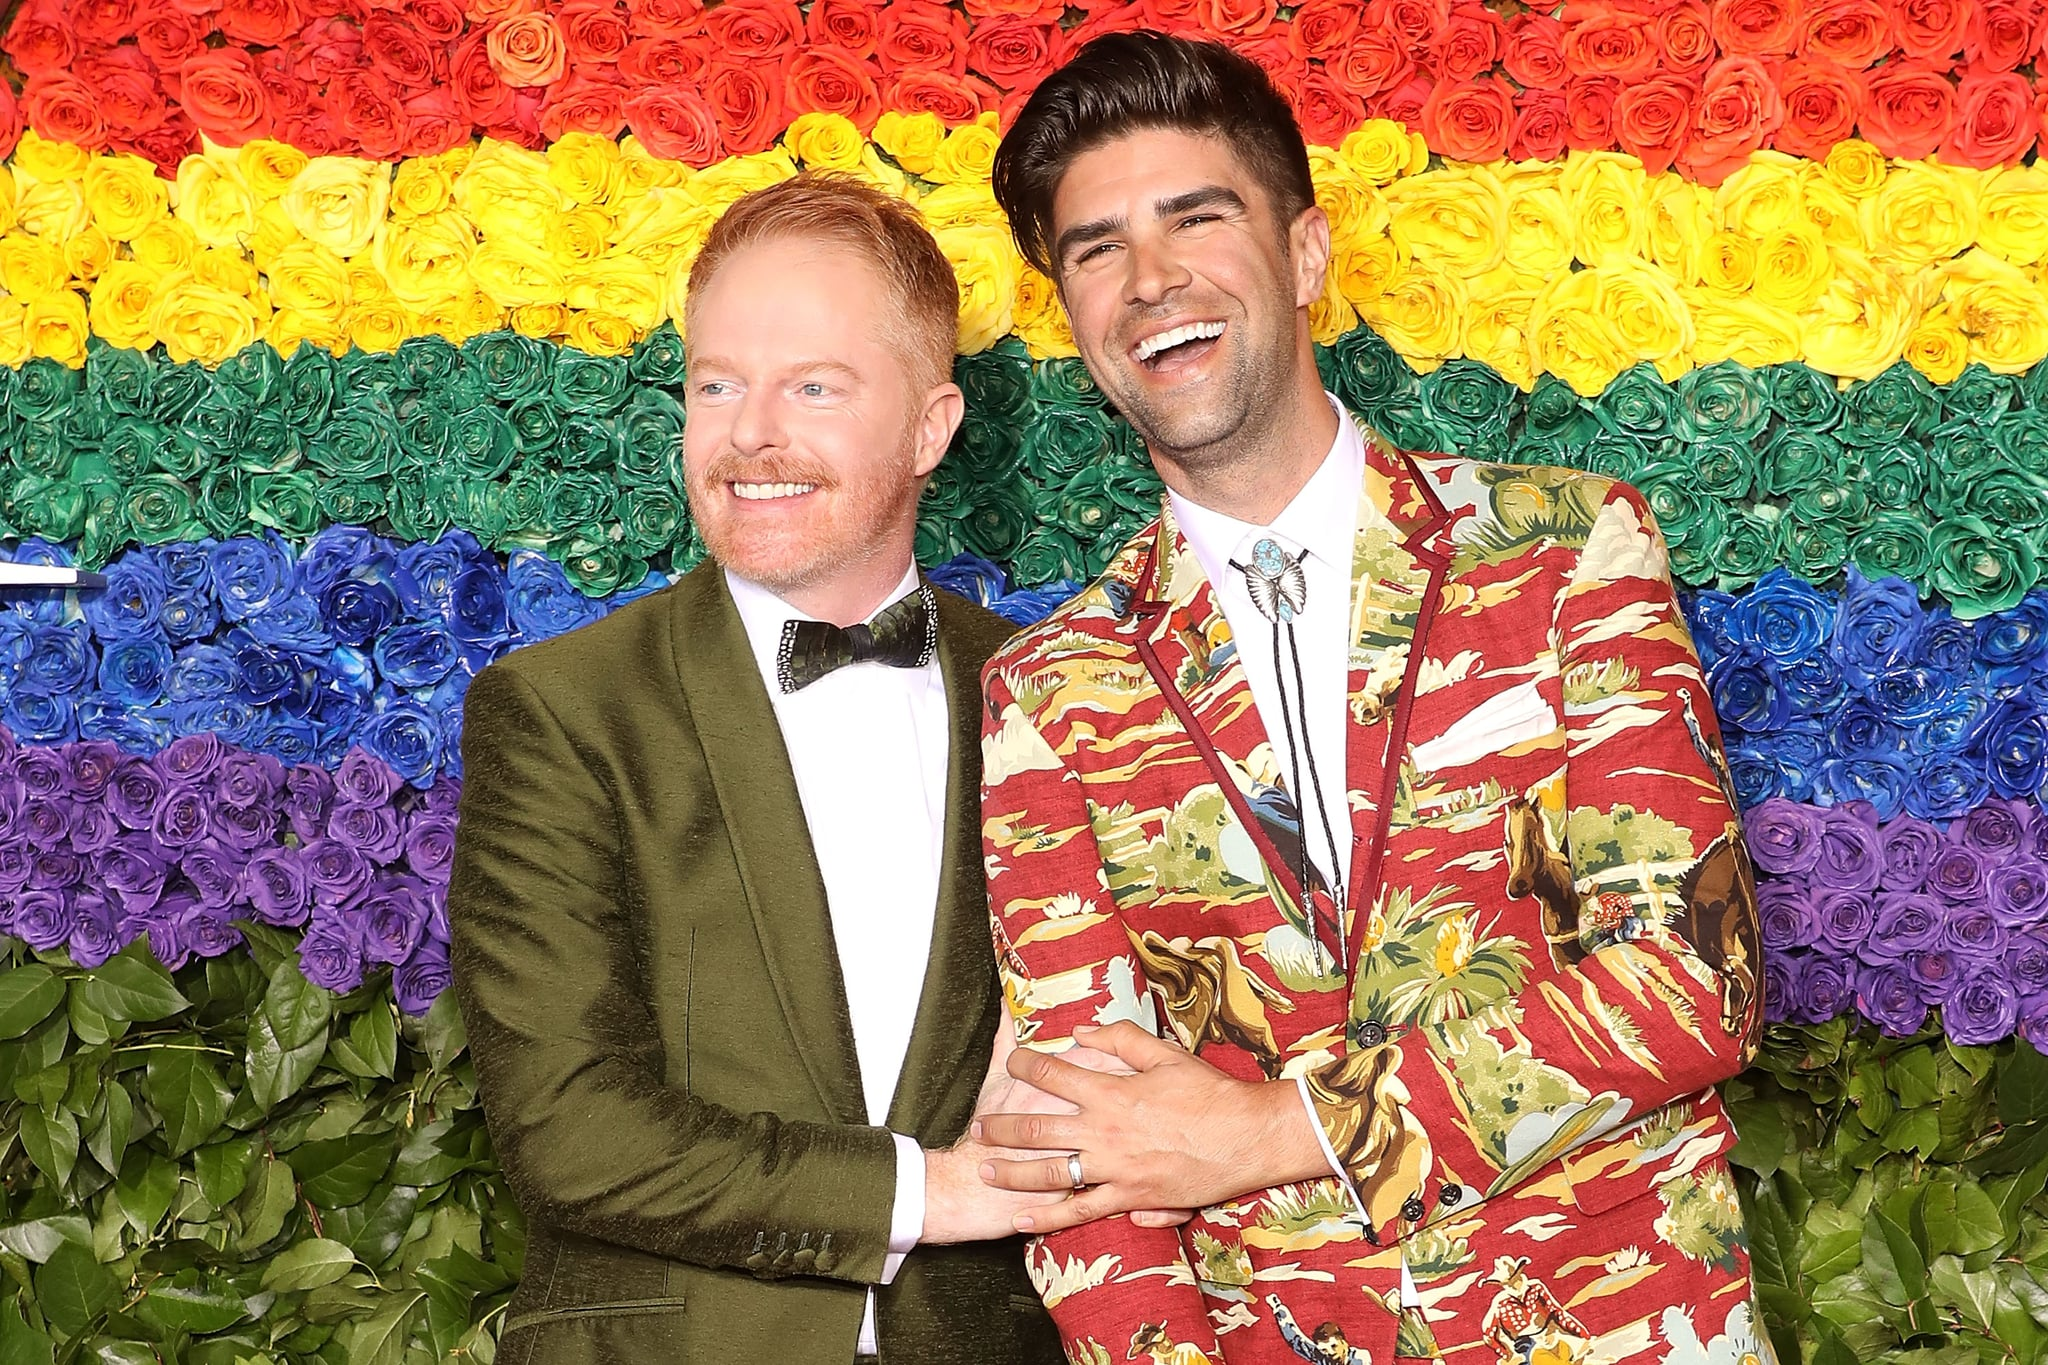 NEW YORK, NY - JUNE 09:  Jesse Tyler Ferguson and Justin Mikita attend the 2019 Tony Awards at Radio City Music Hall on June 9, 2019 in New York City.  (Photo by Taylor Hill/FilmMagic,)